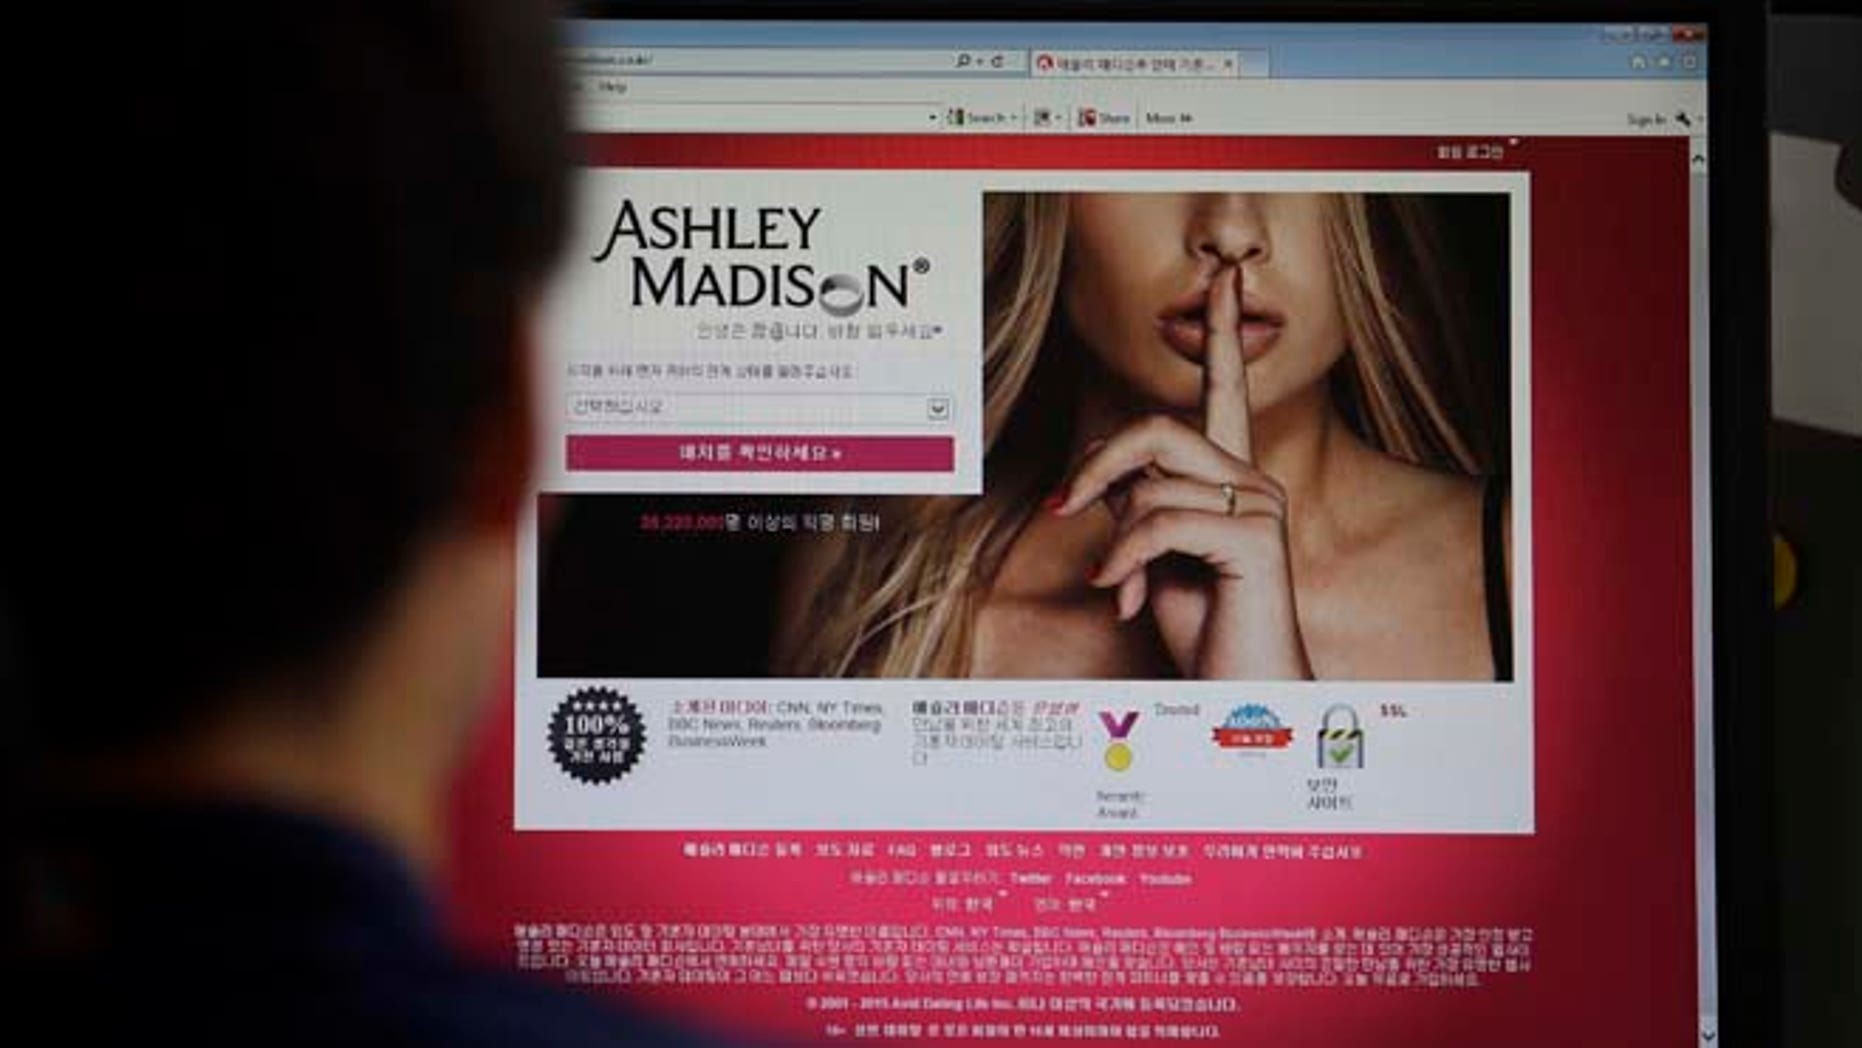 June 10, 2015: Ashley Madison hack said to be one of the largest data breaches in the world.